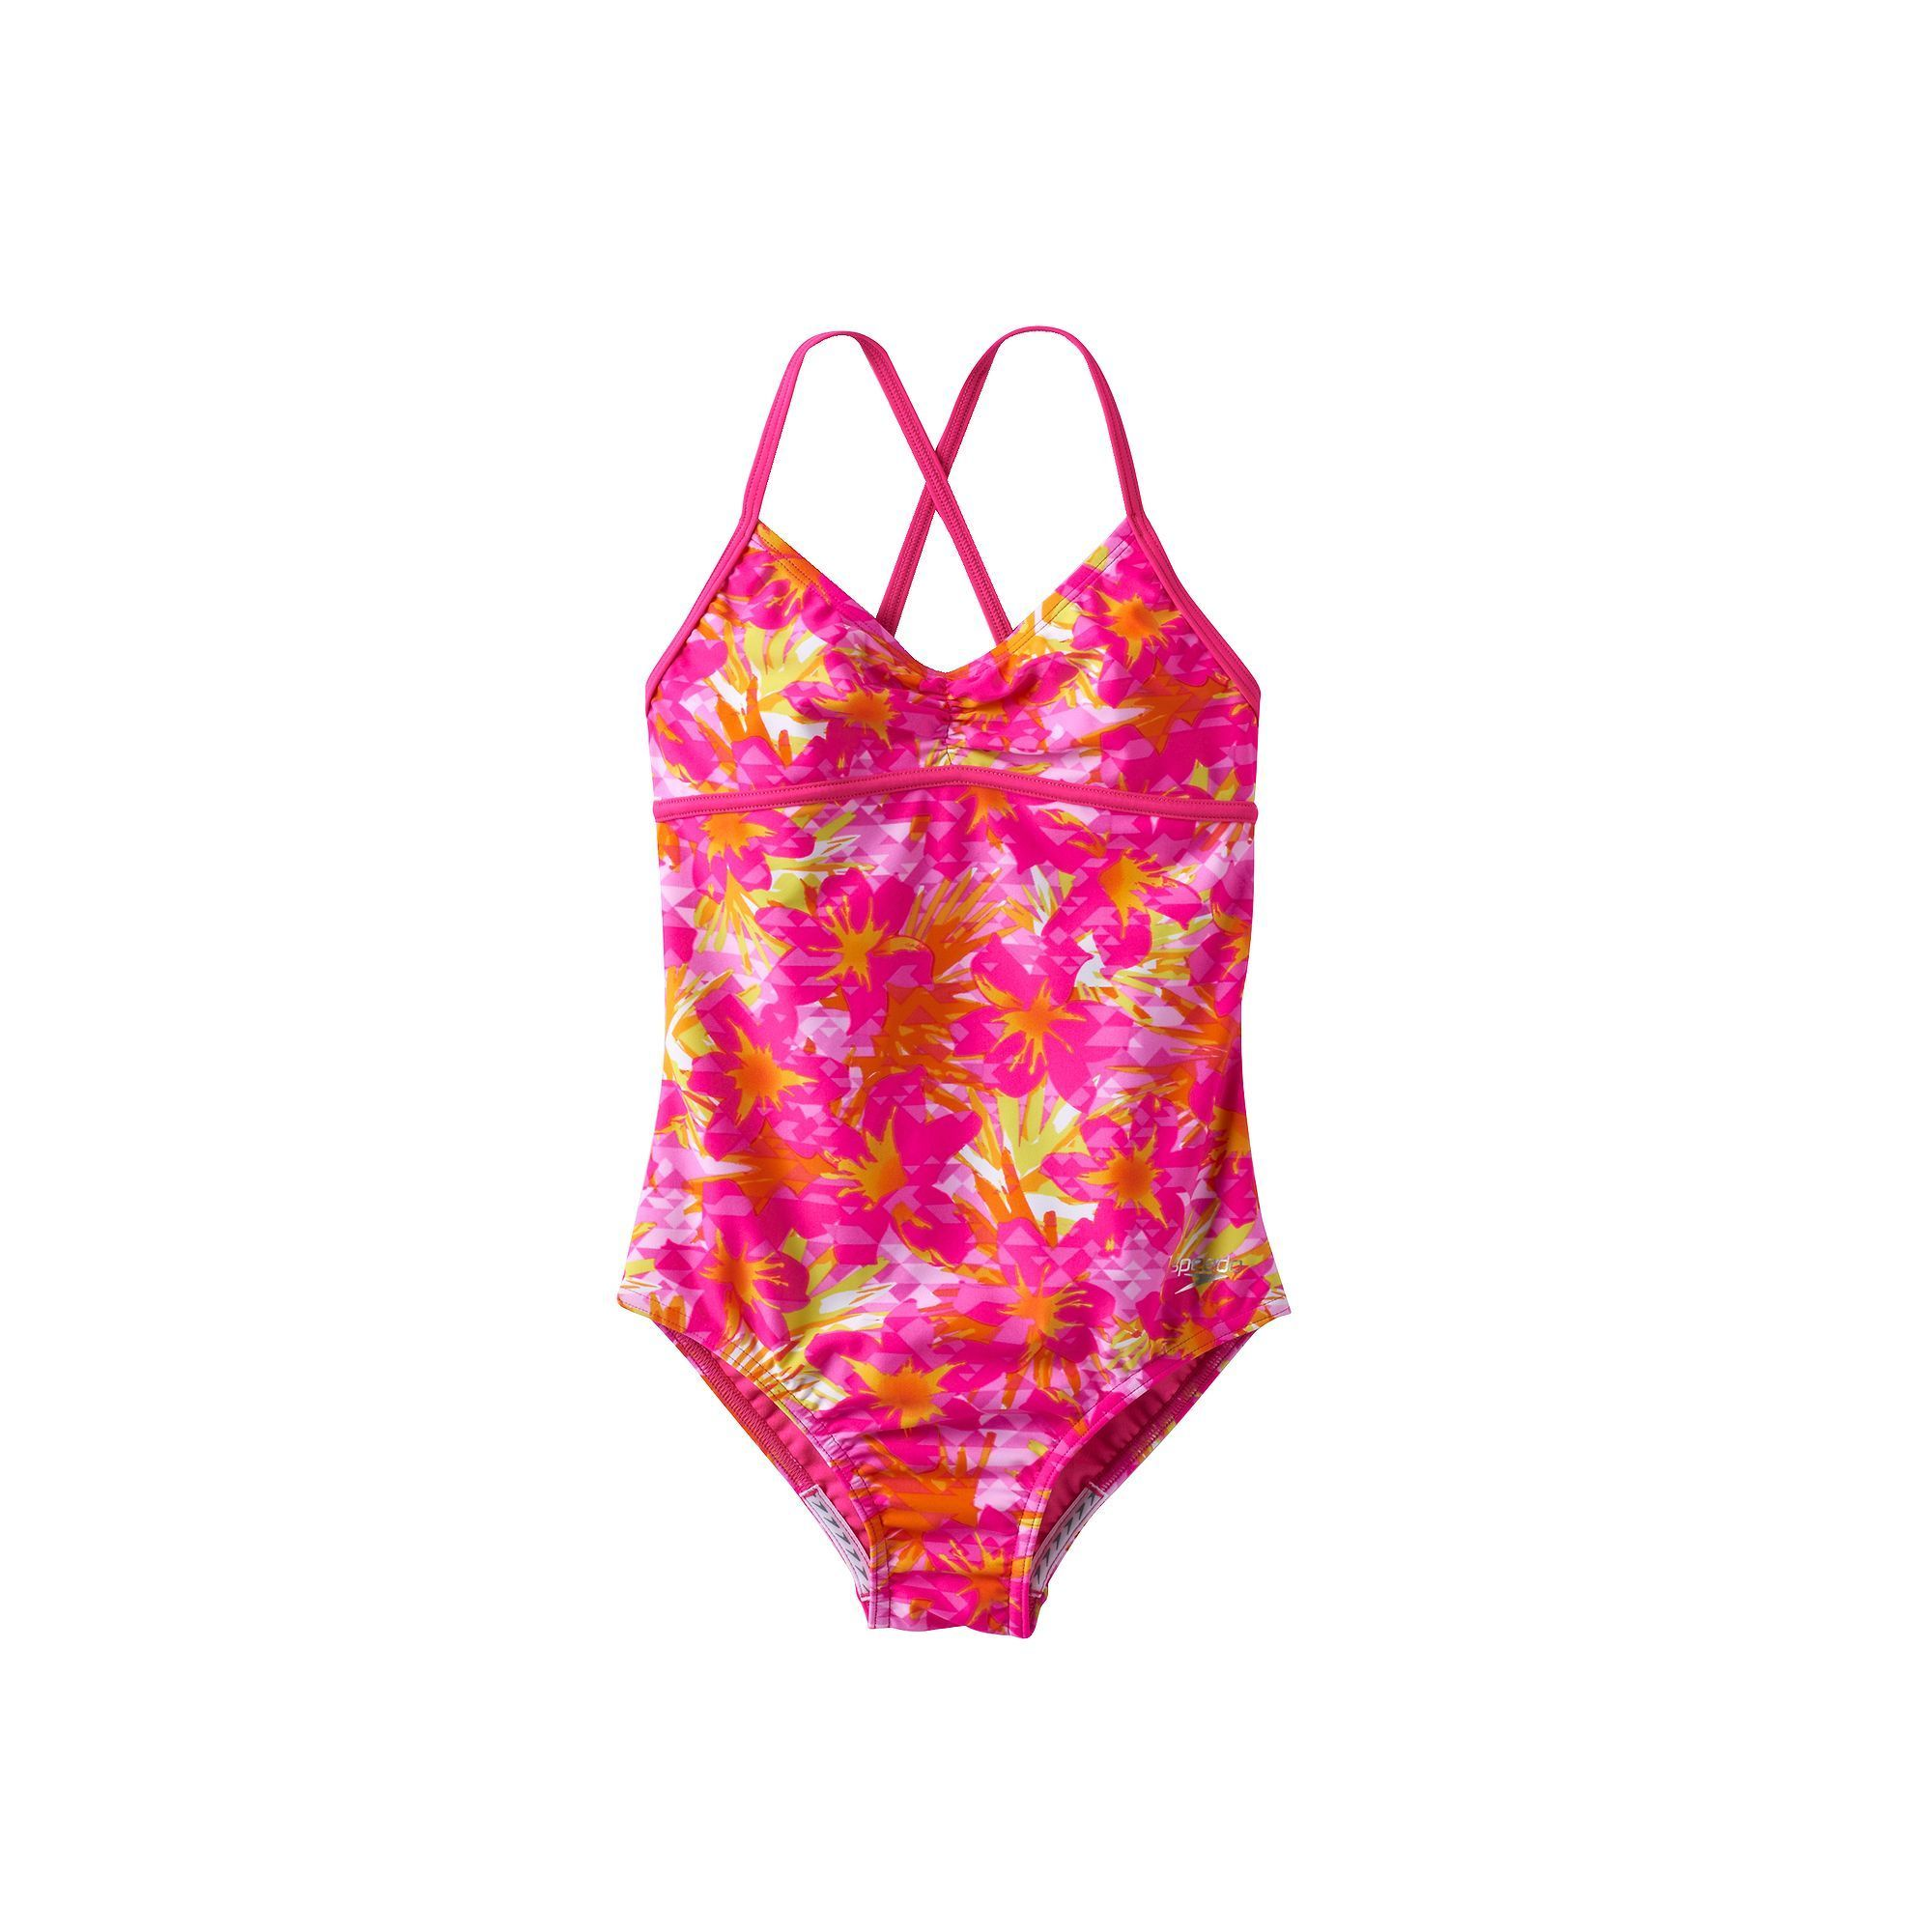 92ef541f4a4fa Girls 7-16 Speedo Jungle Floral One-Piece Swimsuit